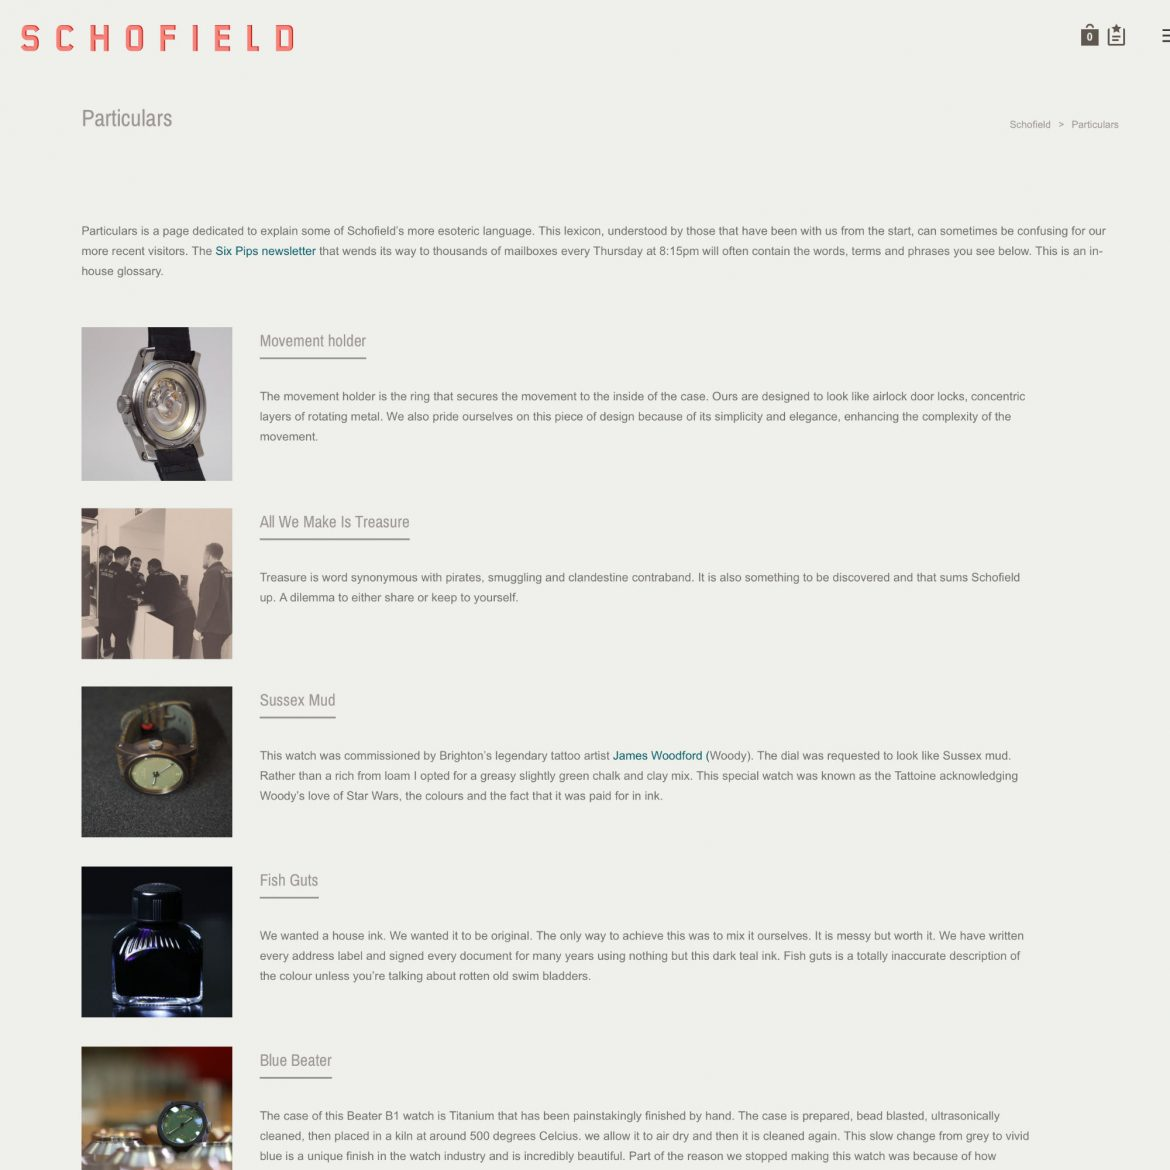 Particulars page